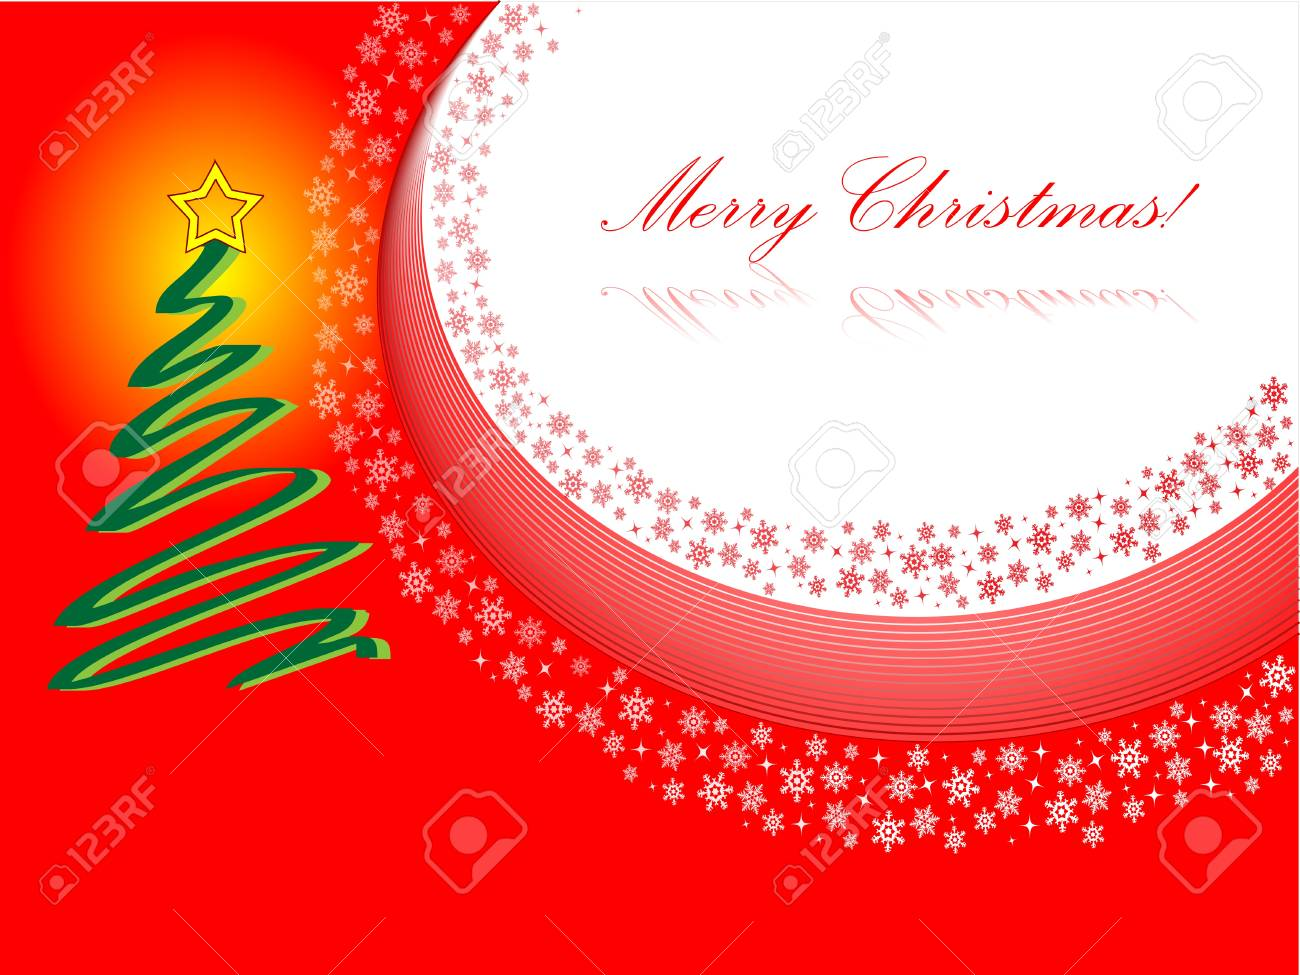 Christmas card design in red with christmas tree Stock Vector - 18624764